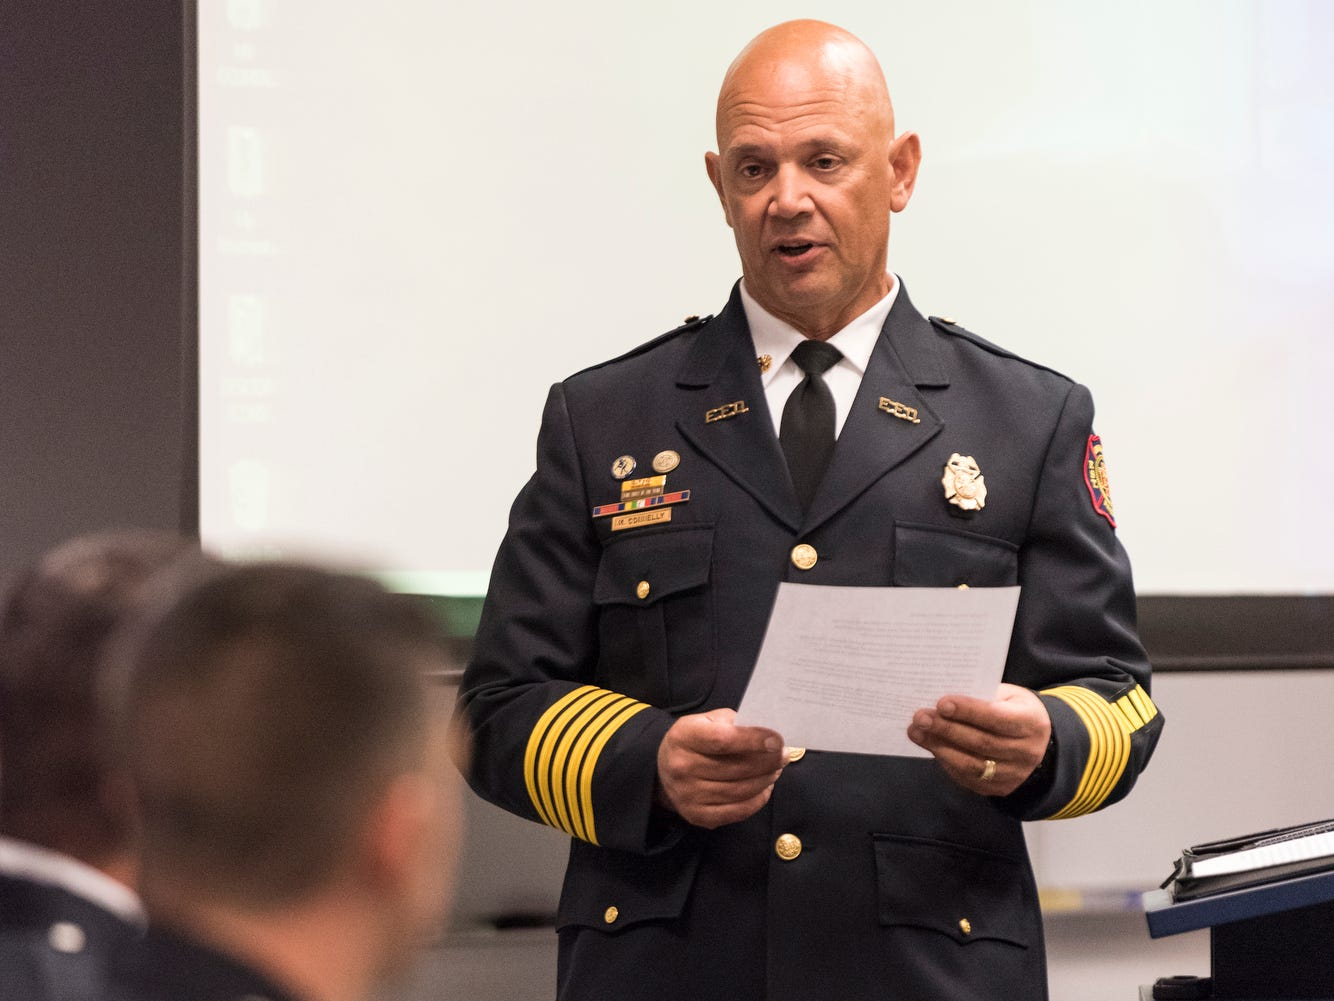 Evansville Fire Chief Charles Connelly reads a statement from Mayor Lloyd Winnecke to the new probationary firefighters during their graduation ceremony at the American Red Cross Headquarters in Evansville, Ind., Friday, Oct. 12, 2018.